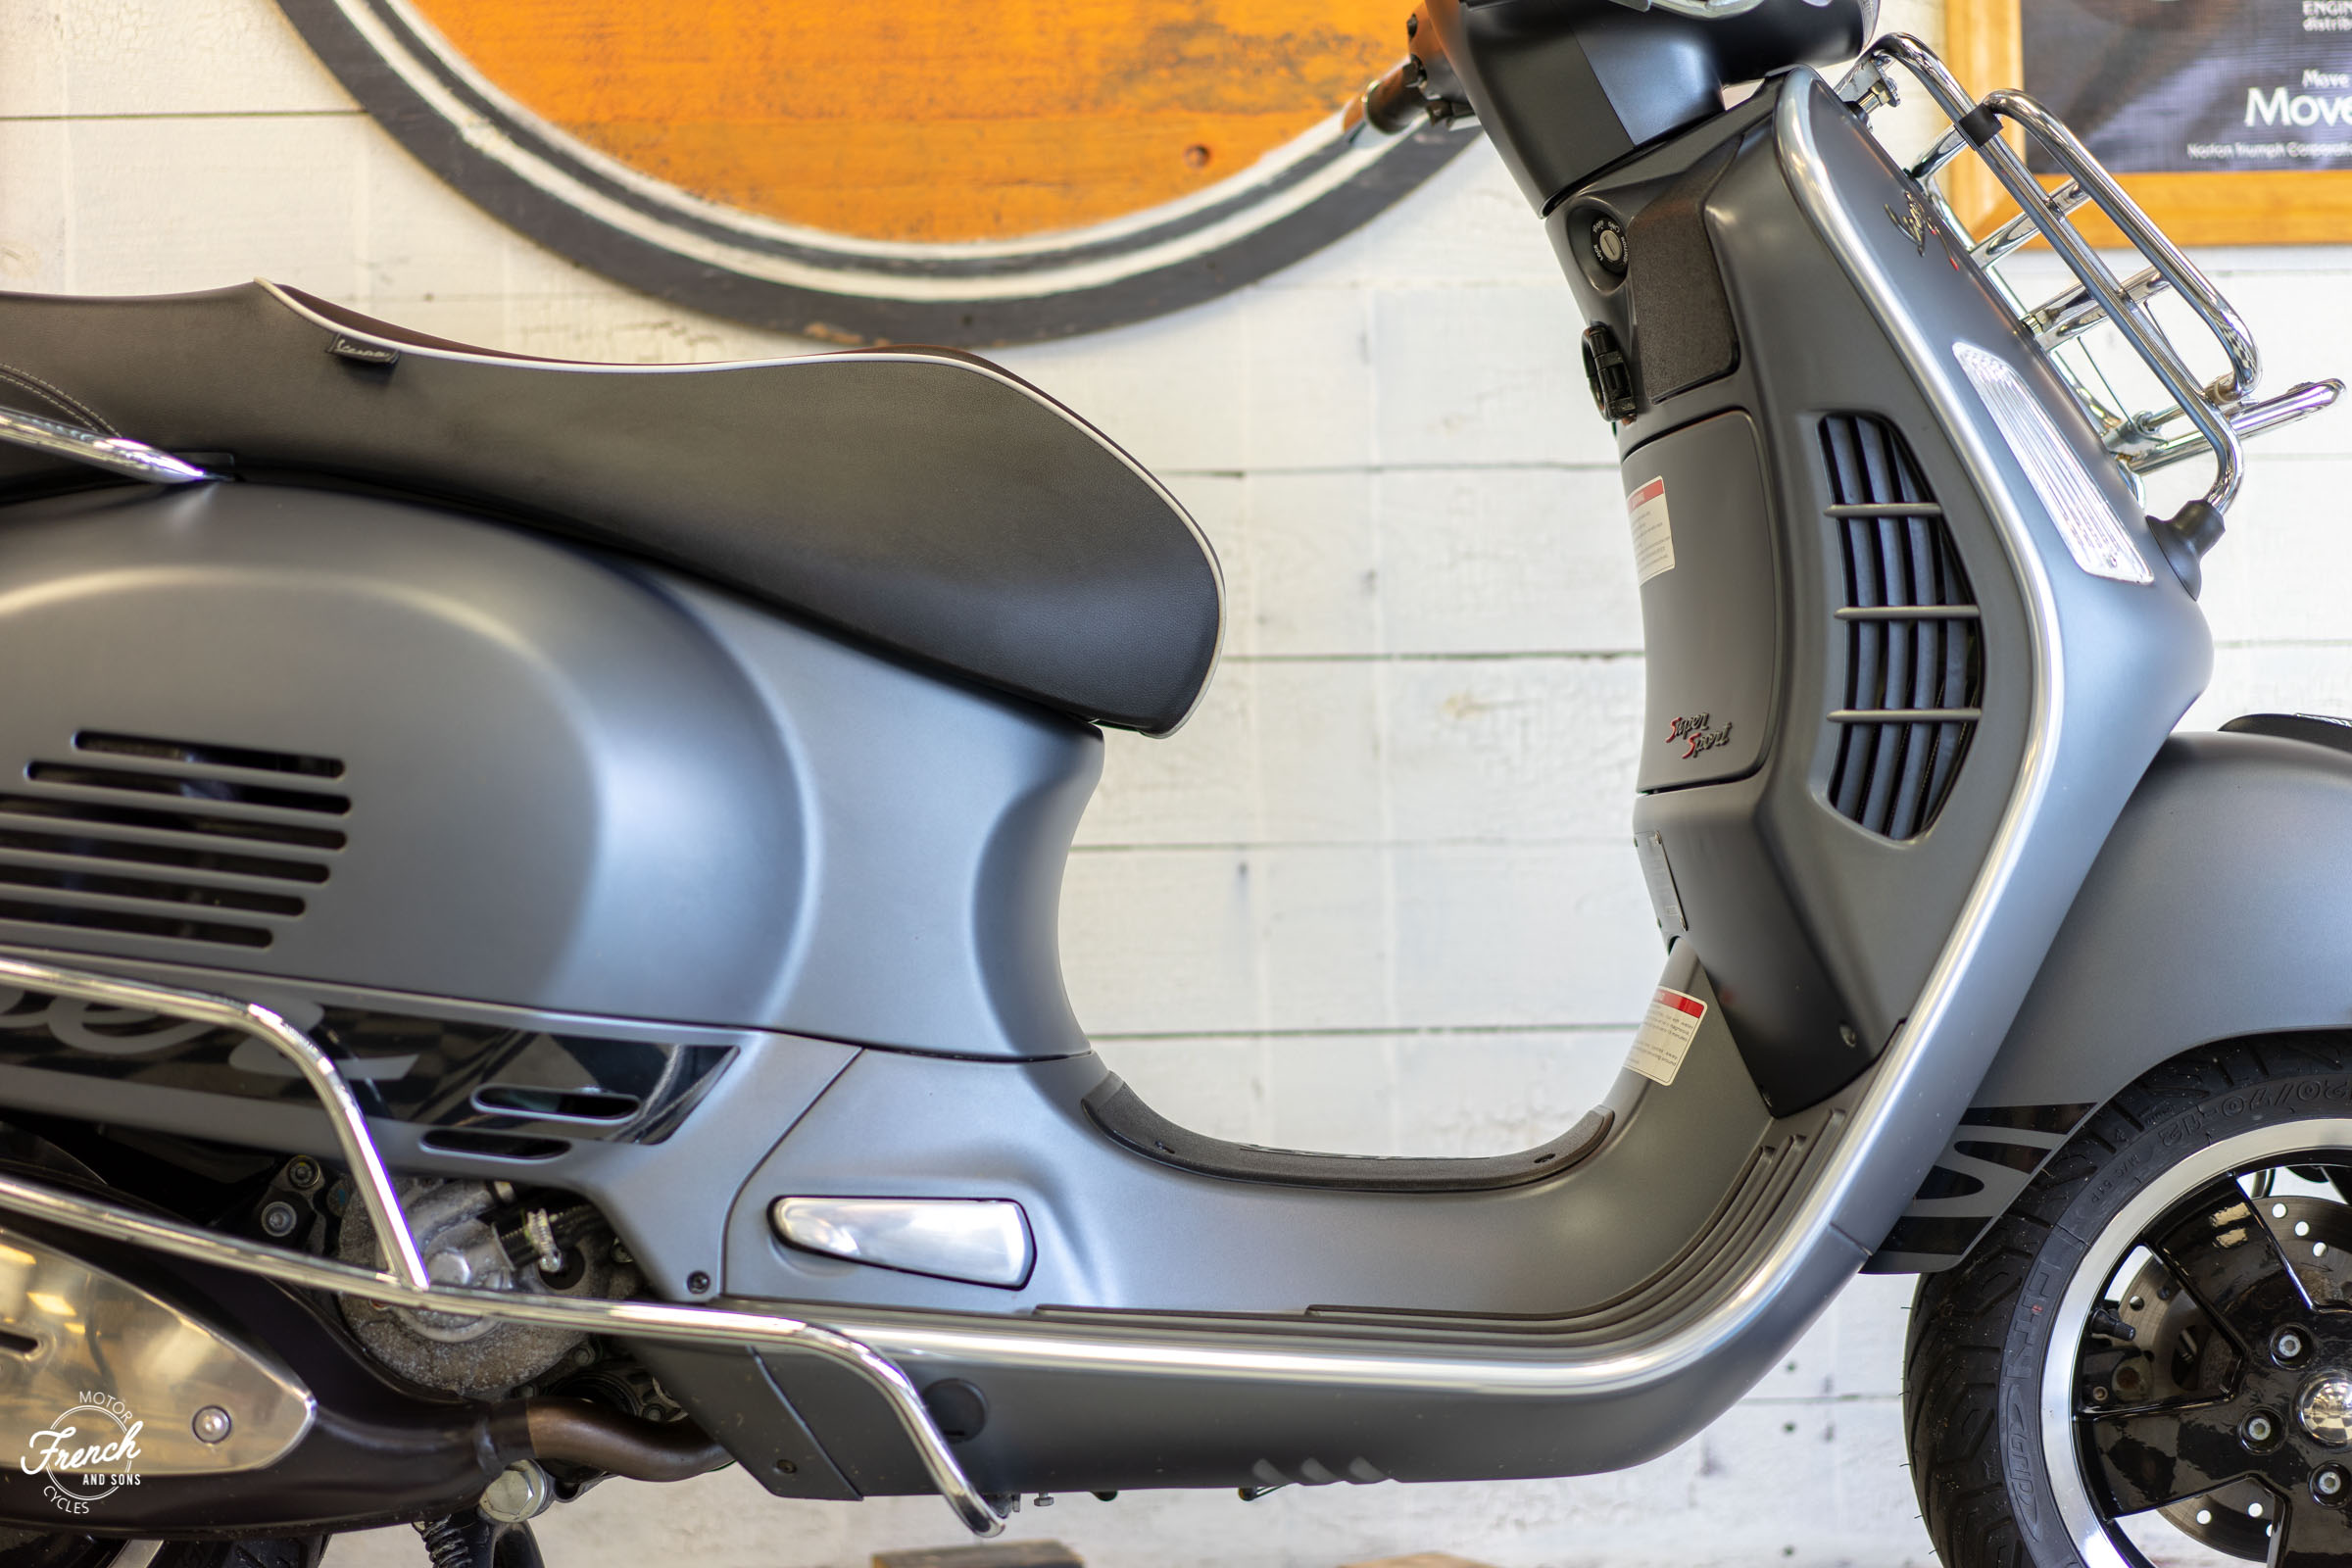 2017 Vespa GTS300 Super Sport — French and Sons Motorcycles